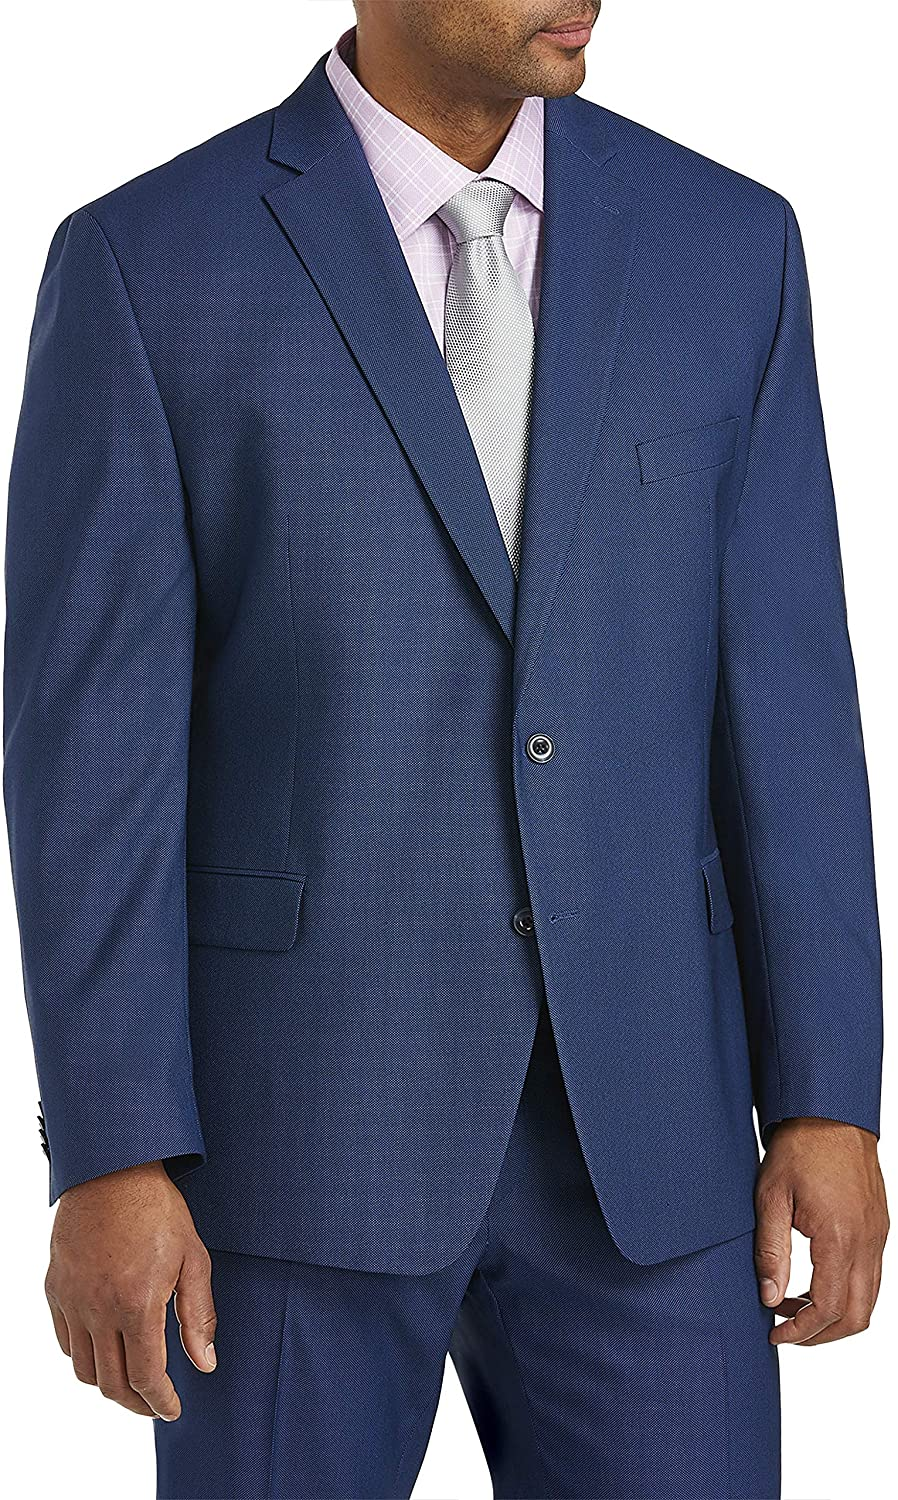 Michael Kors Birdseye Suit Jacket, Blue, 58 Long